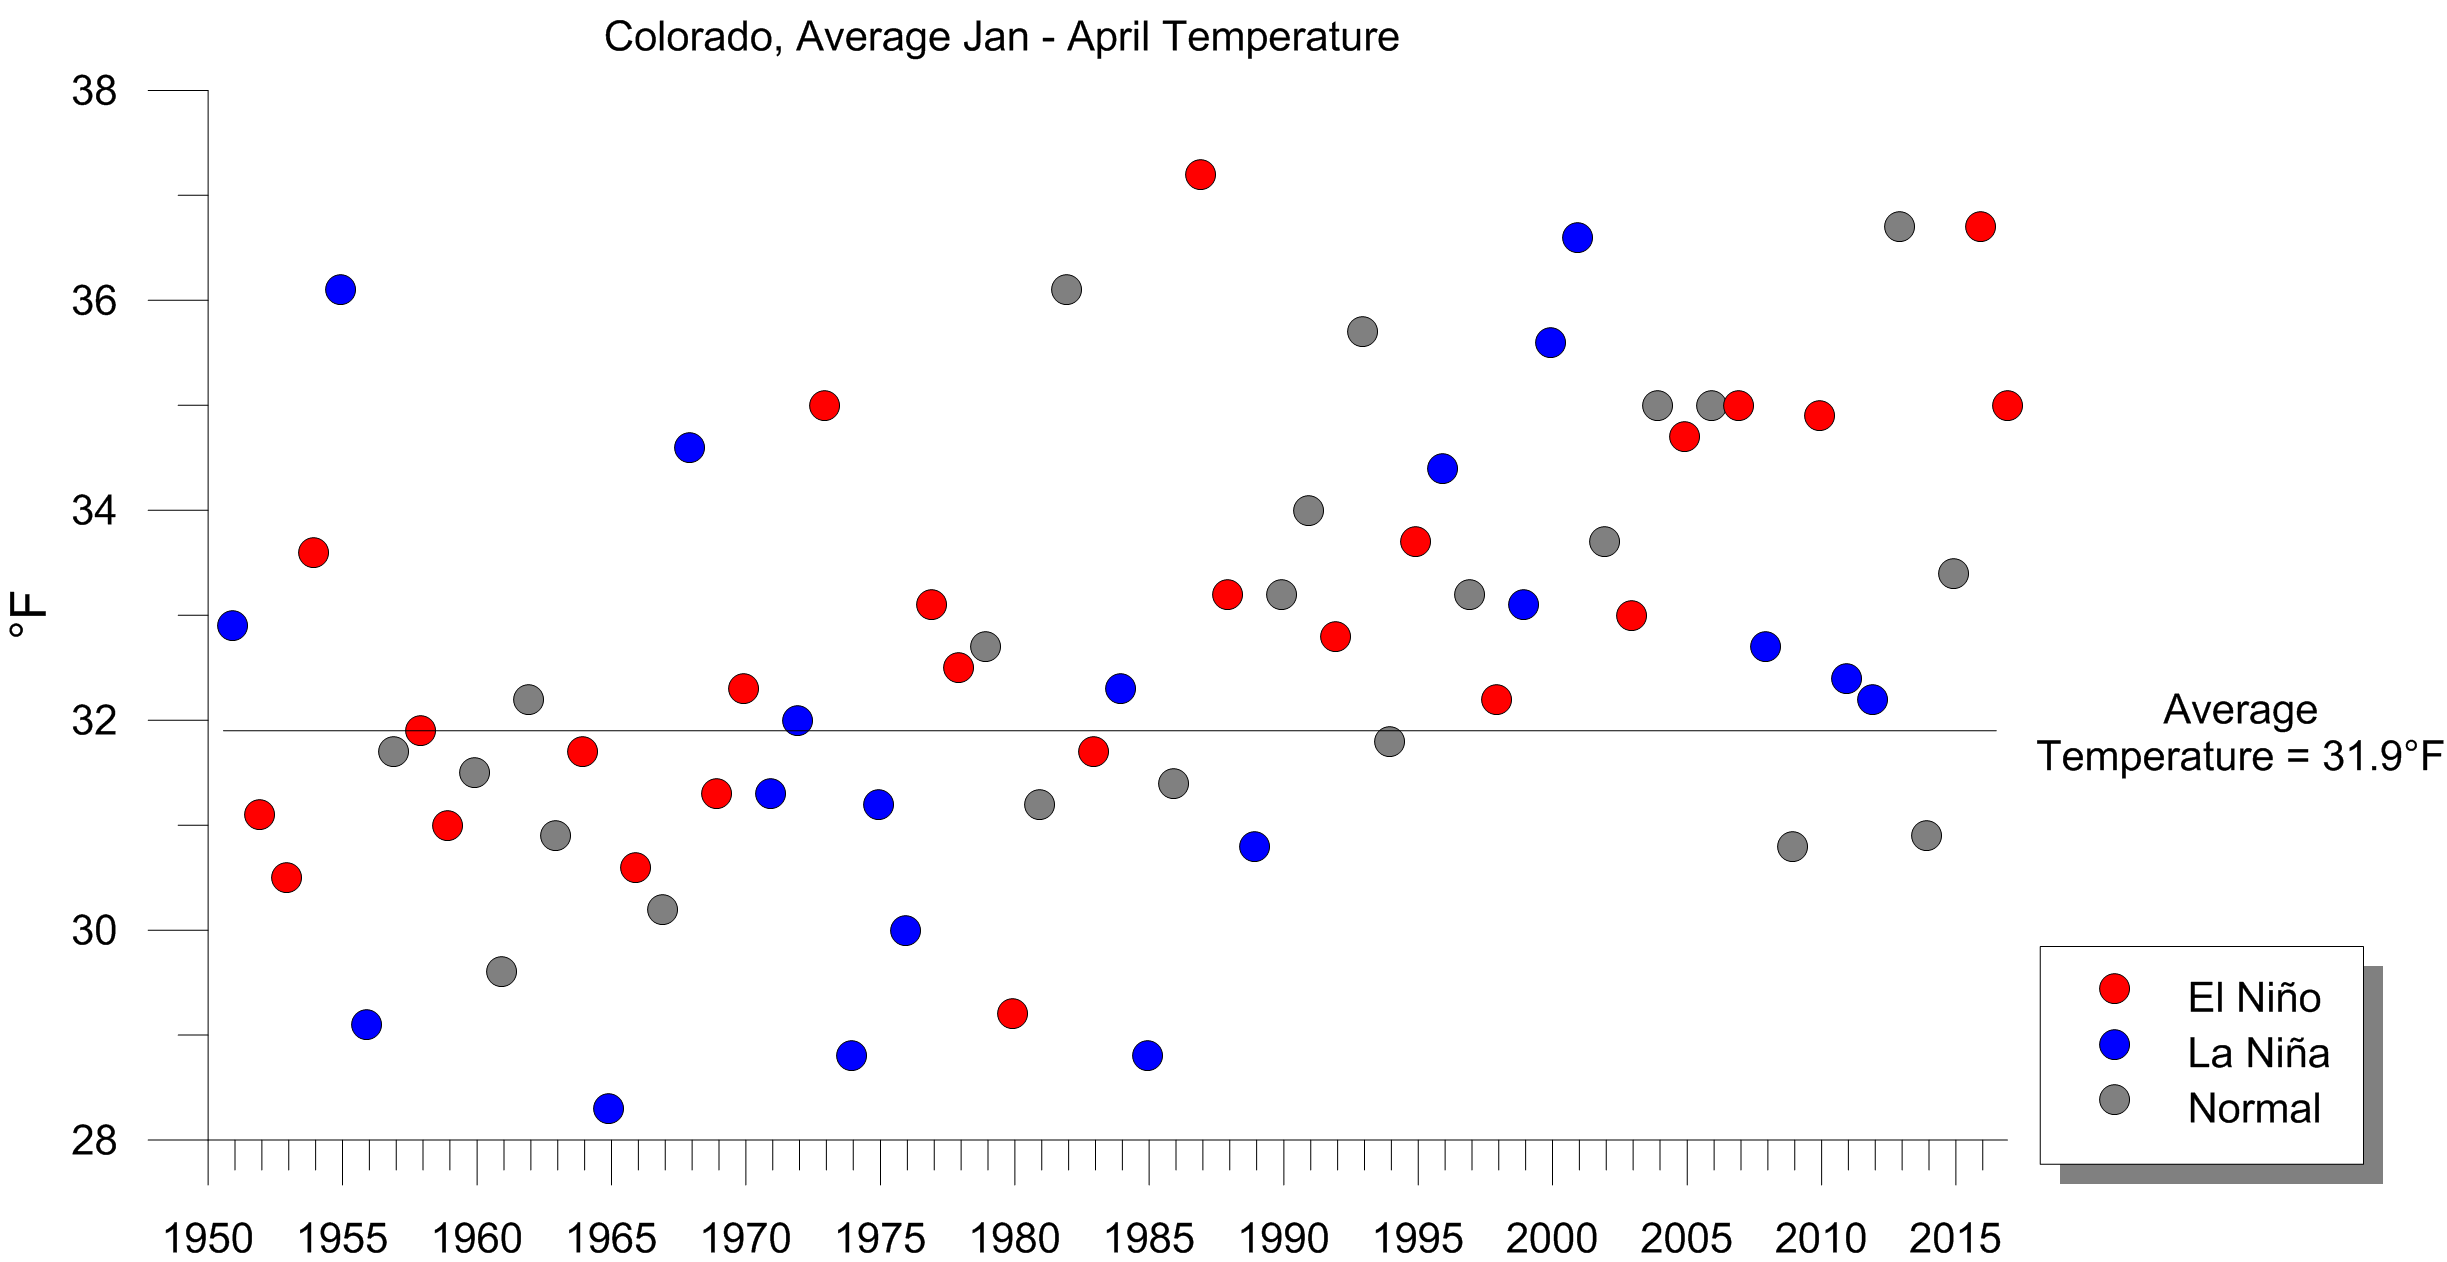 Scatter plot displaying average year-to-date temperature in Colorado January through April